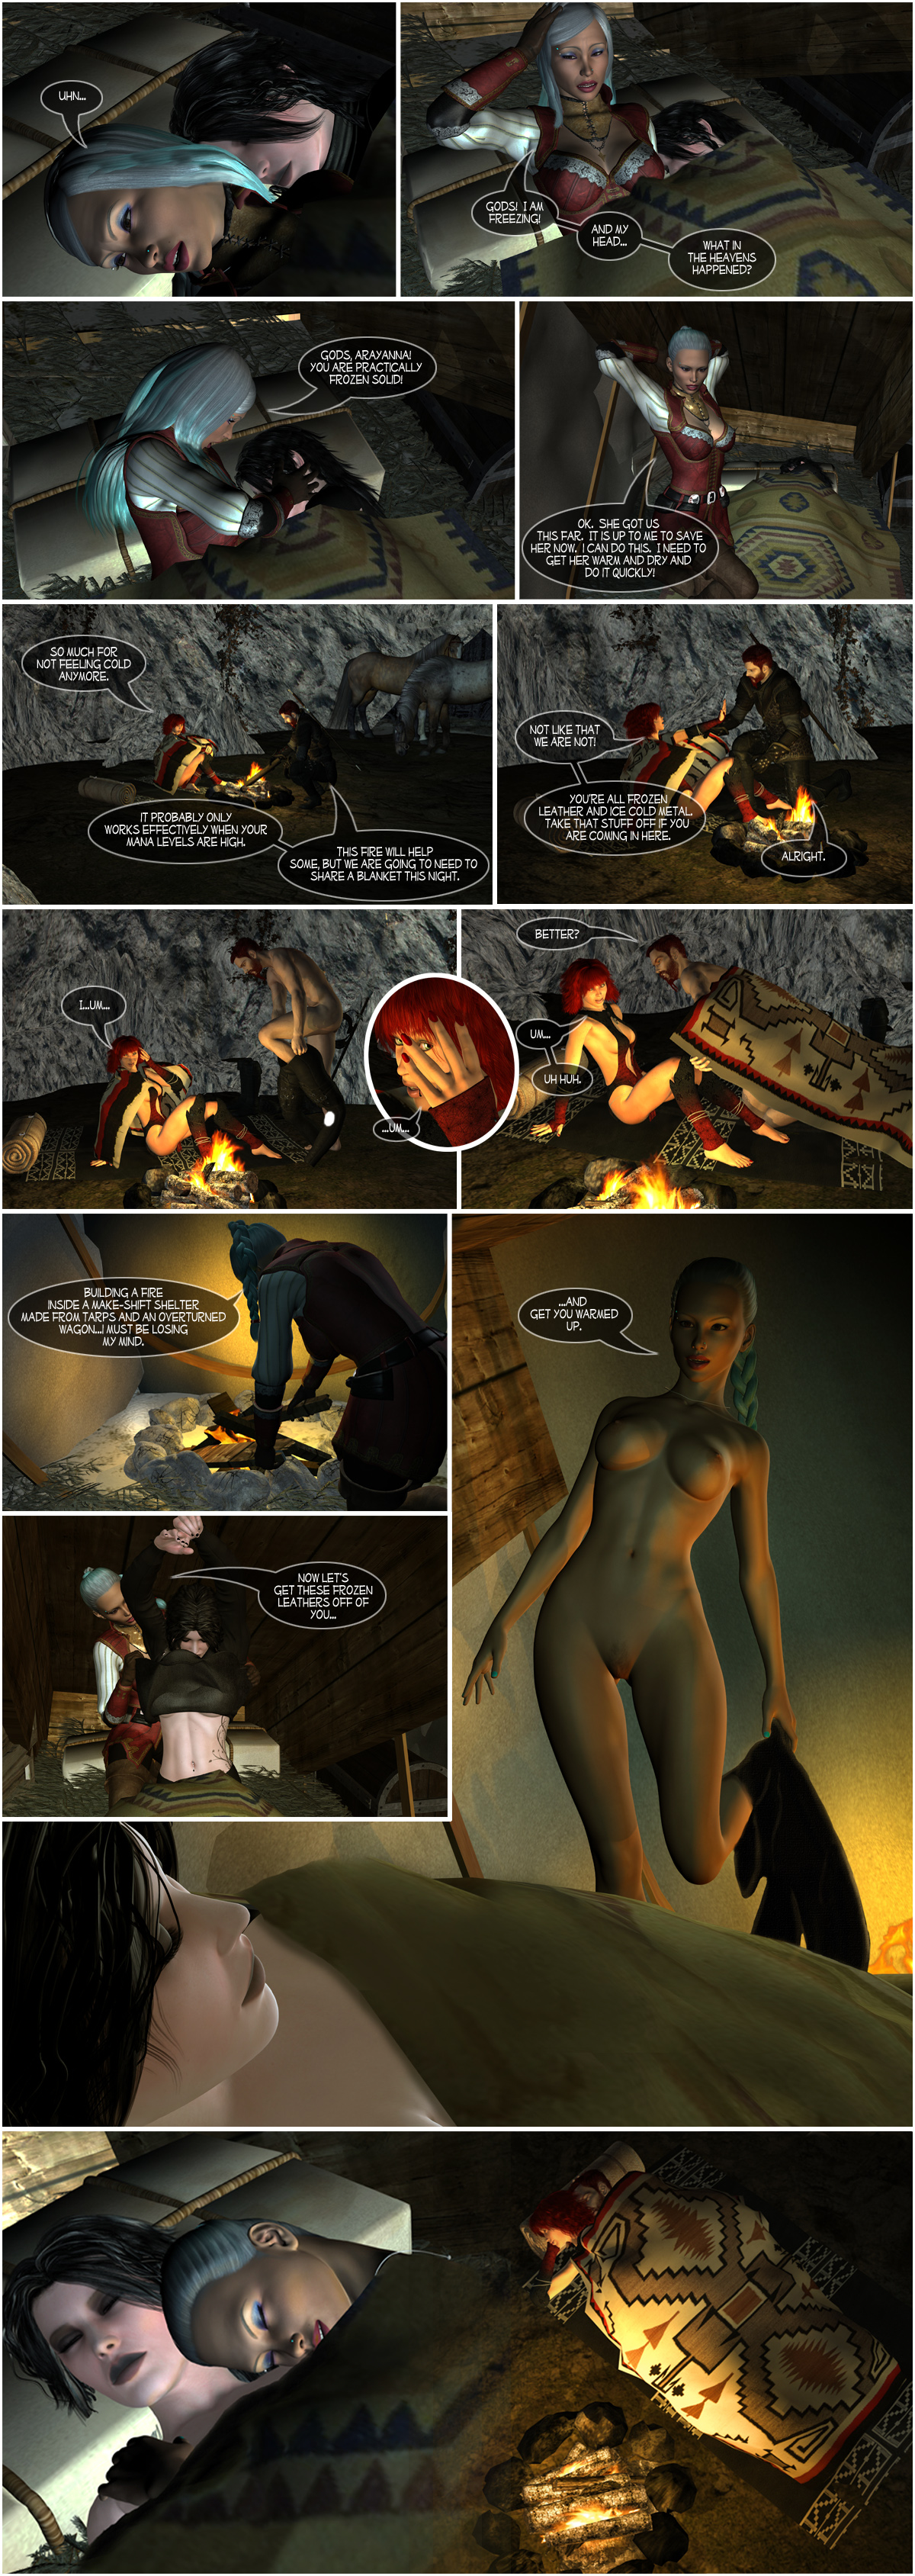 Book 1, Chapter 6, Page 22